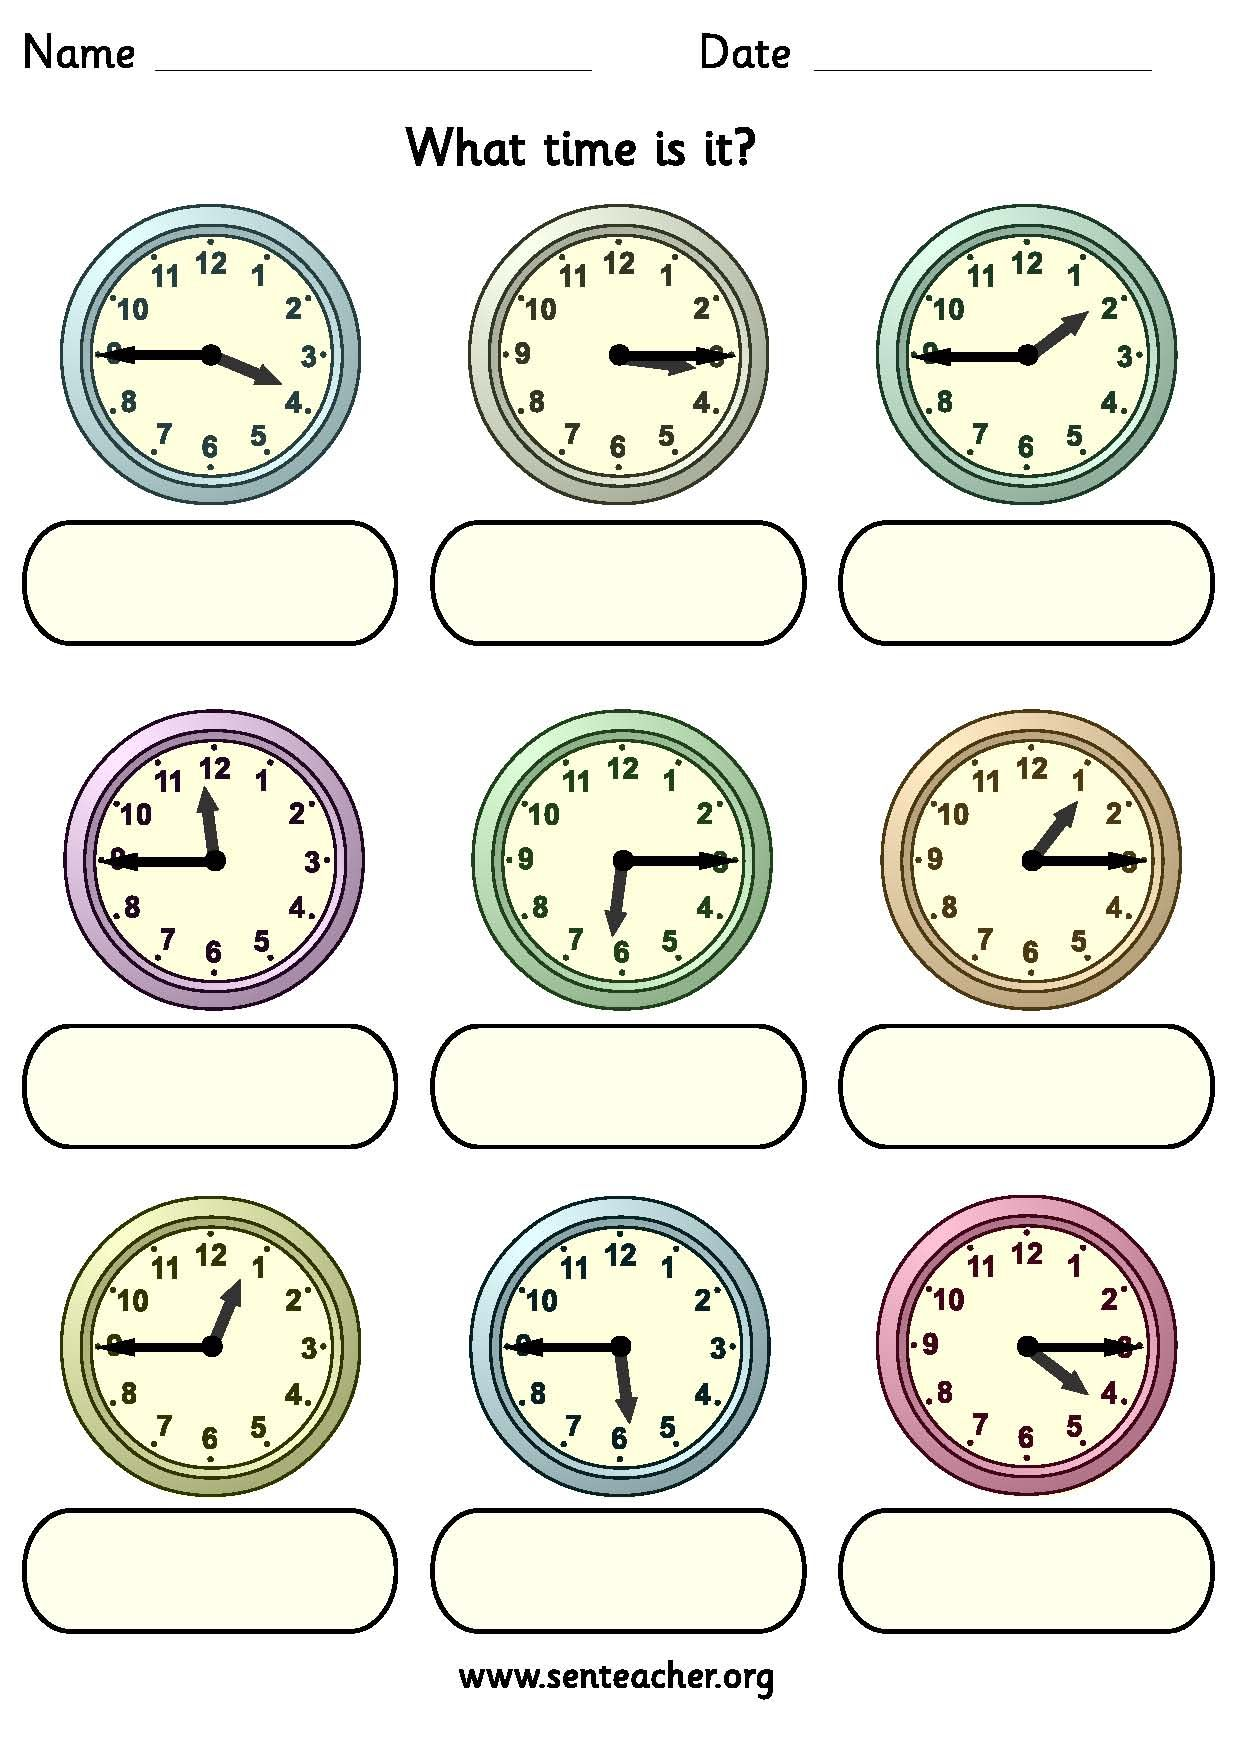 Worksheet Containing 9ogue Clocks Showing Quarter To